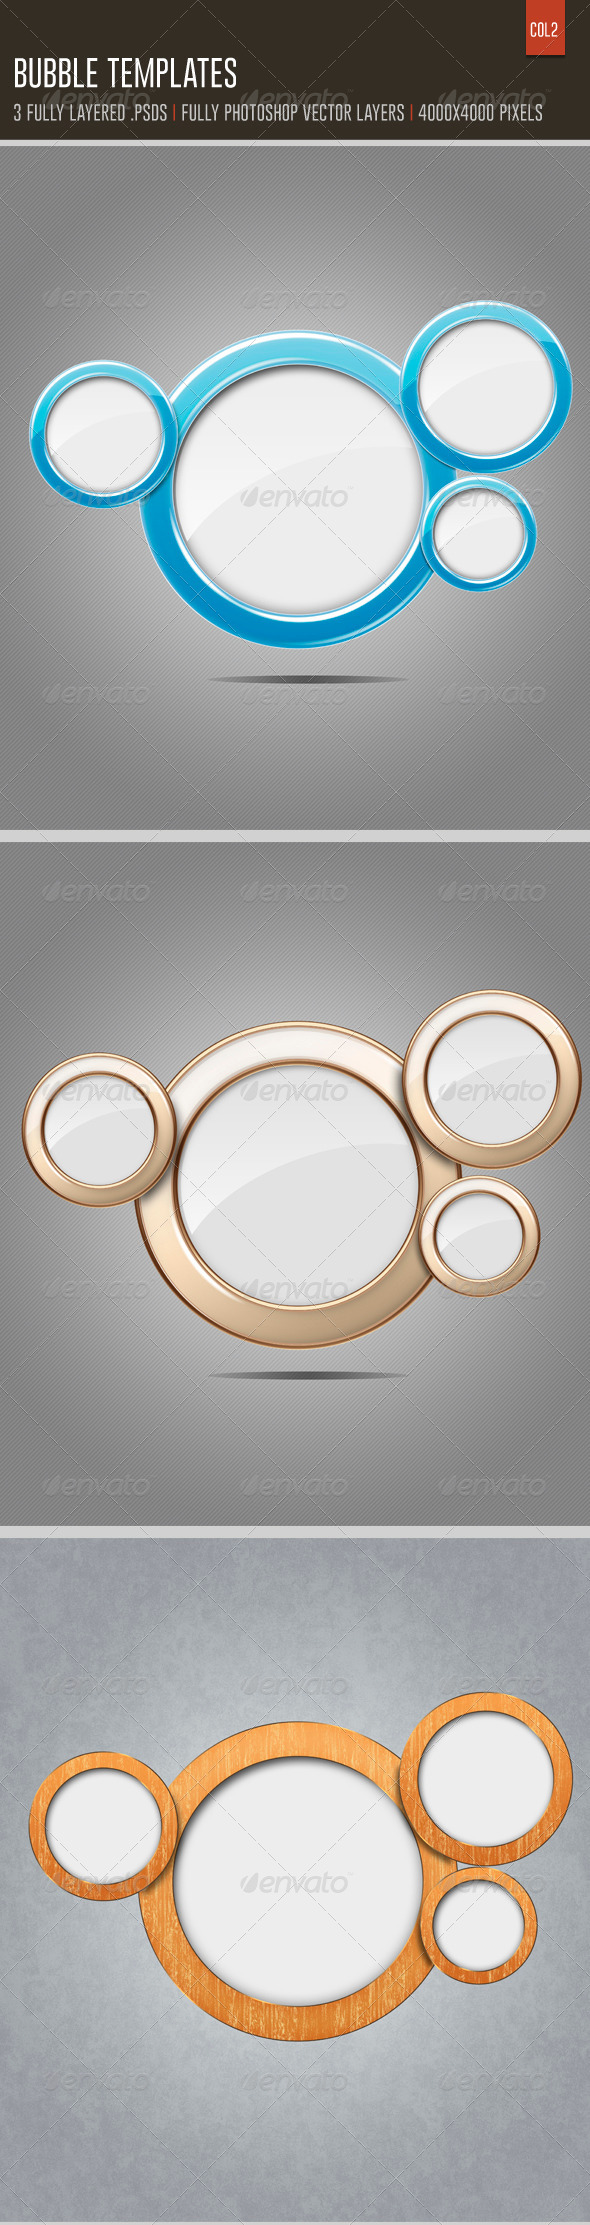 GraphicRiver Bubble Templates 6504182